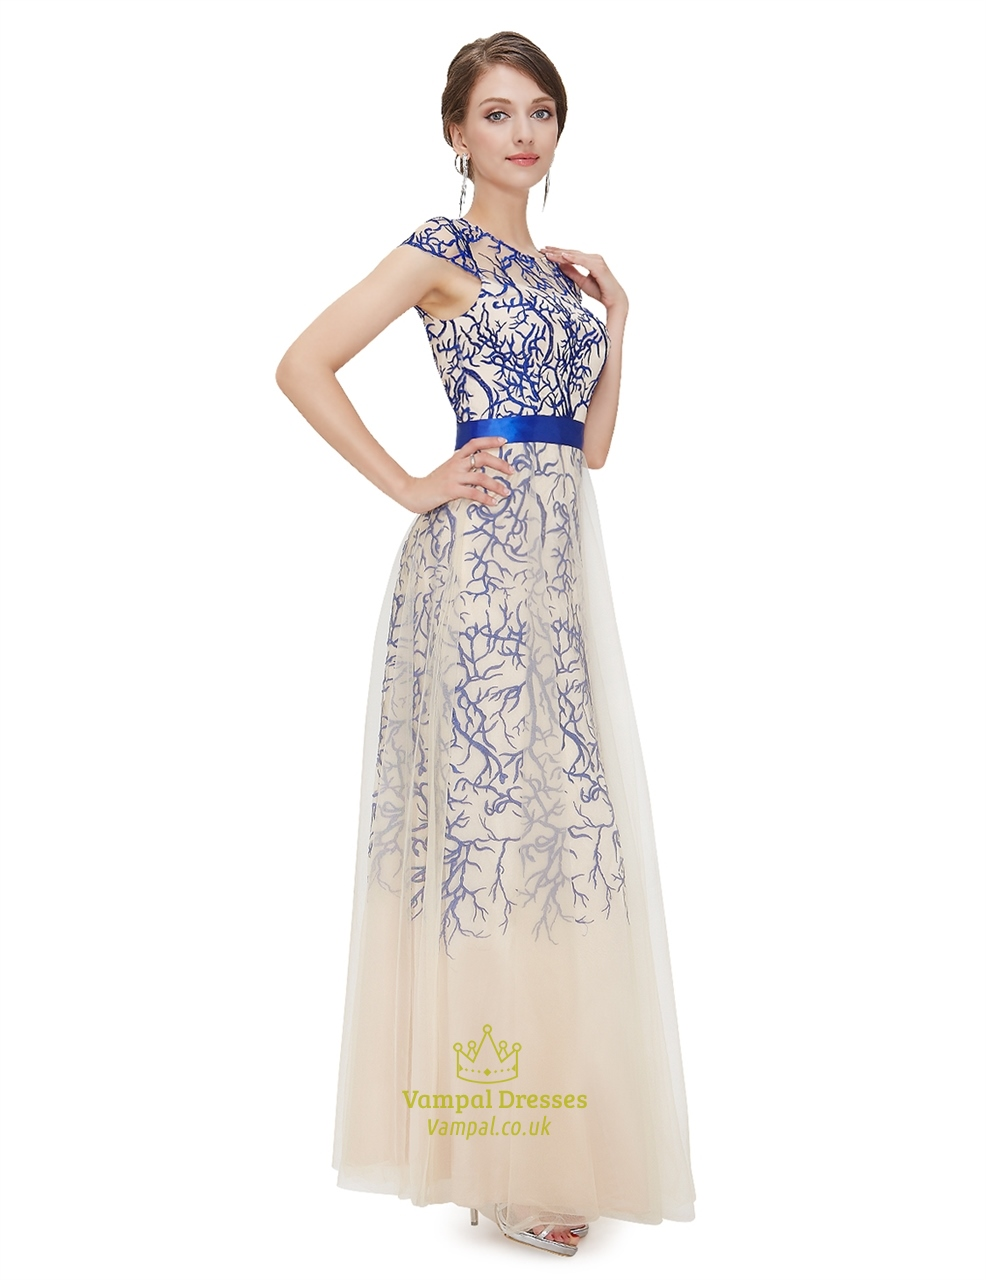 Champagne Cap Sleeves Tulle Prom Dress With Embroidered